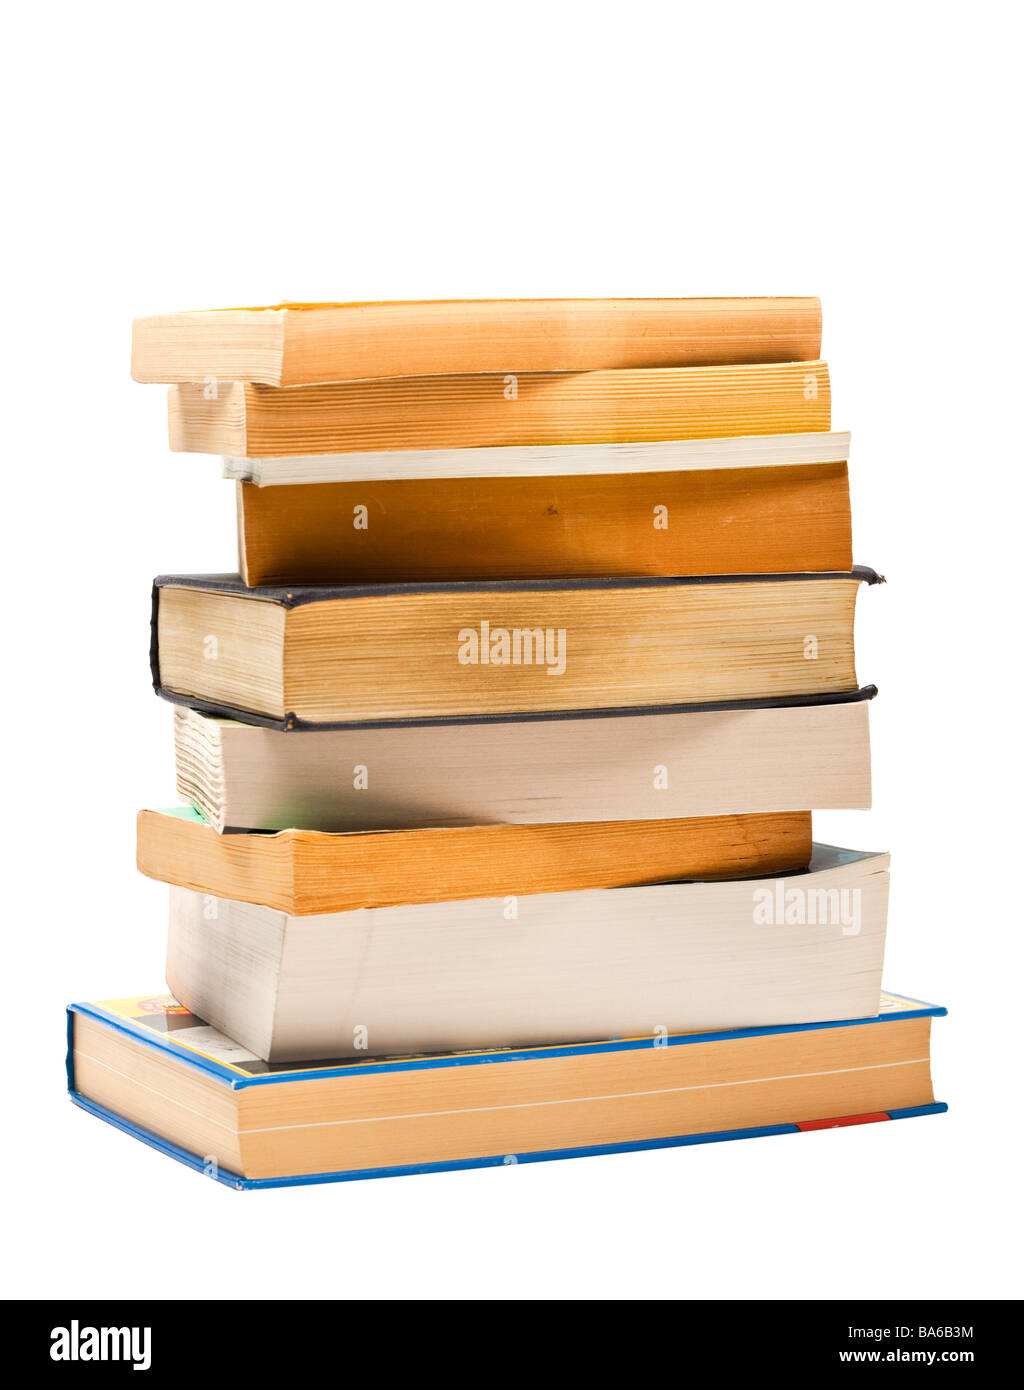 Books - stack of old books on white background - Stock Image